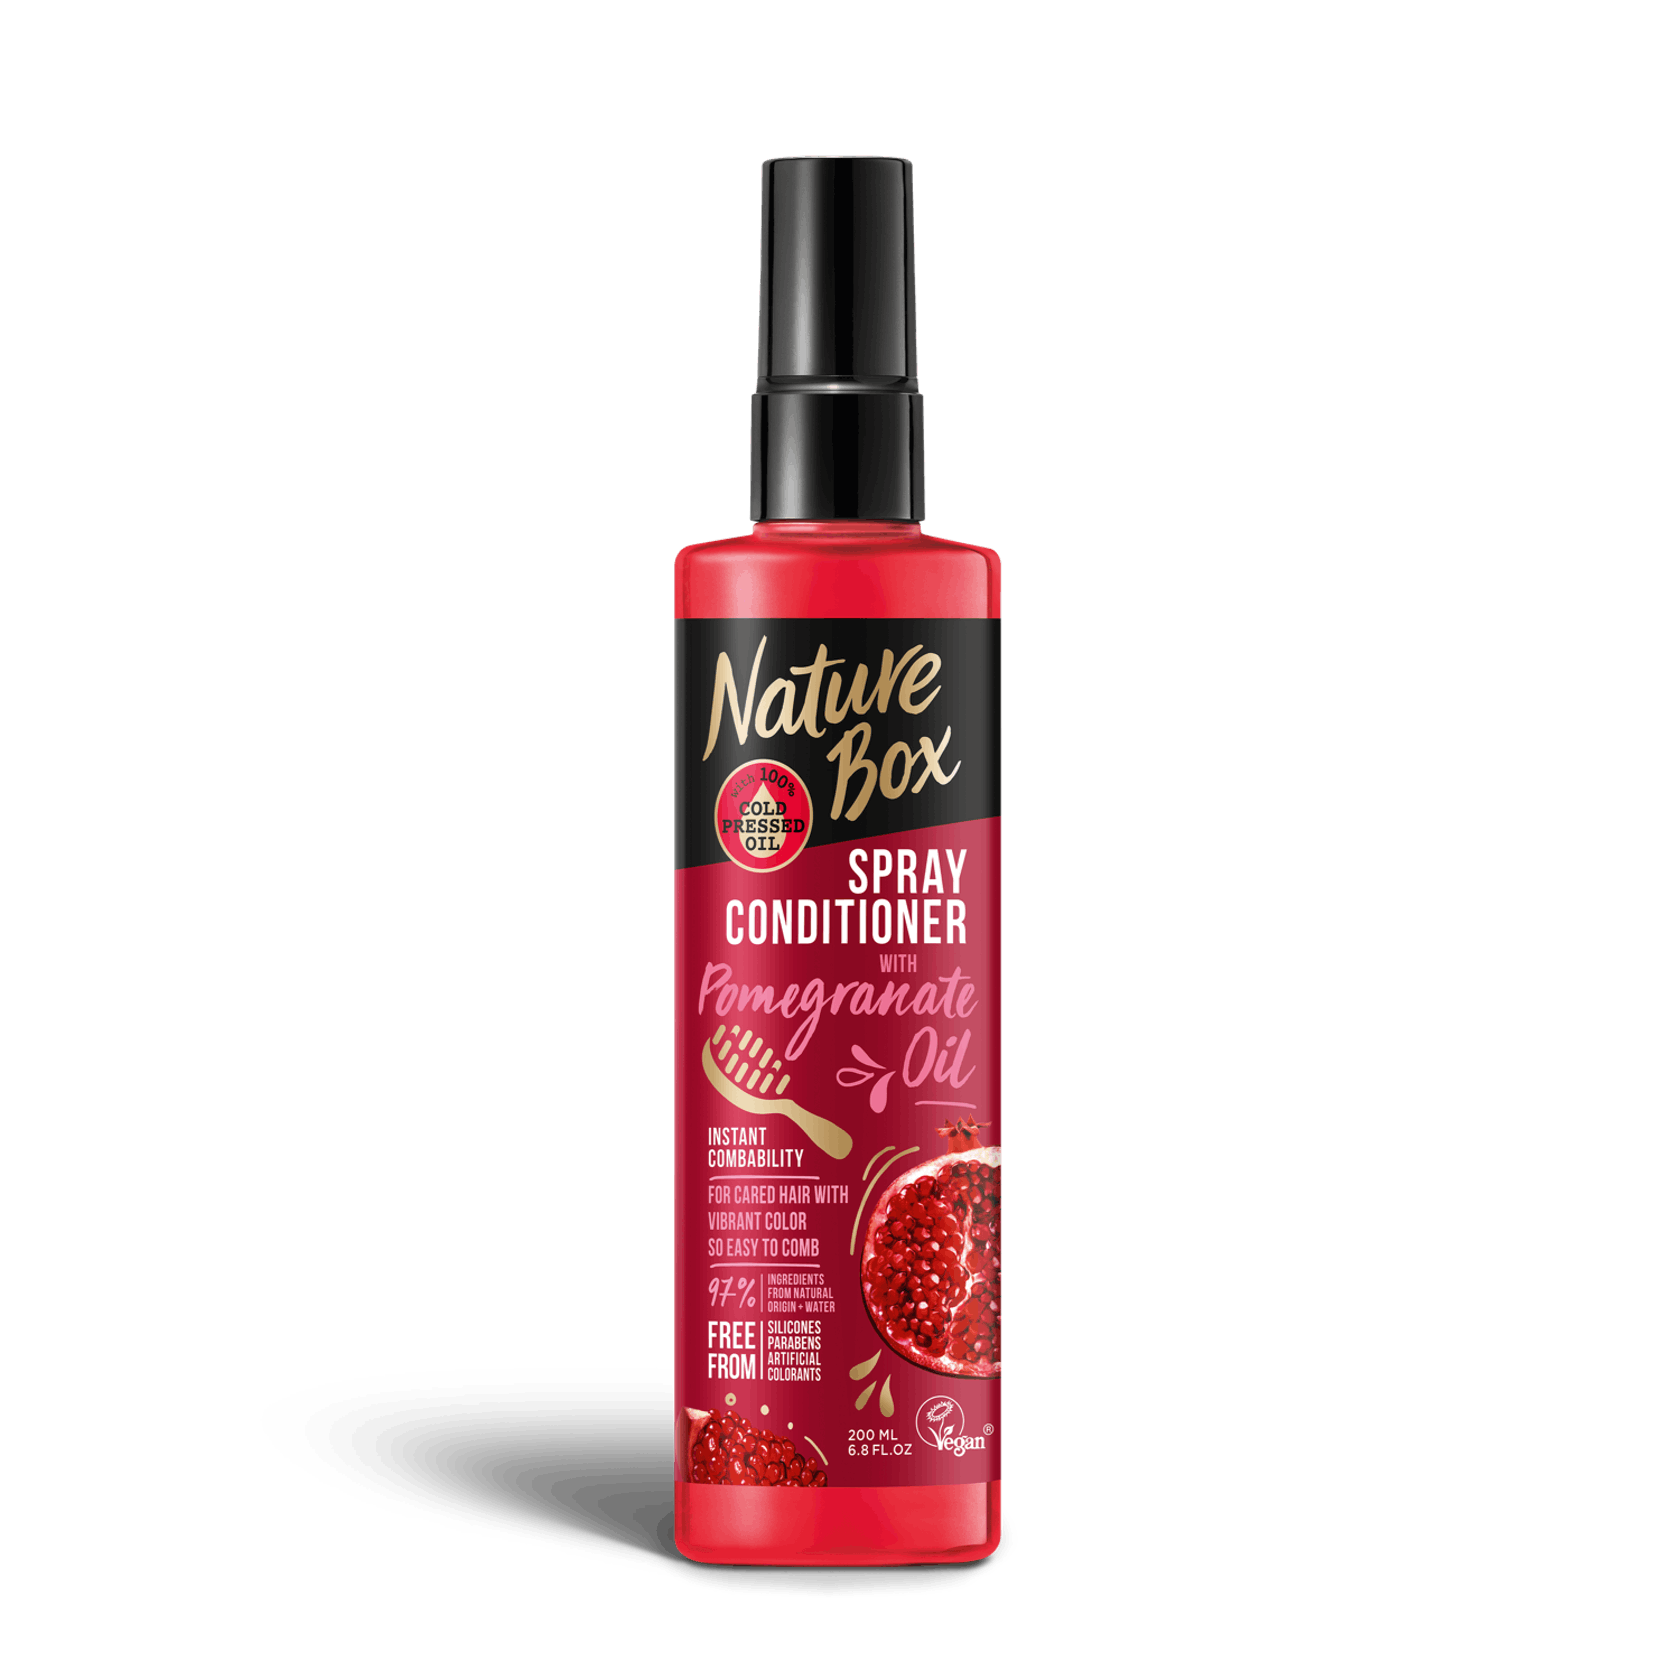 Spray Conditioner